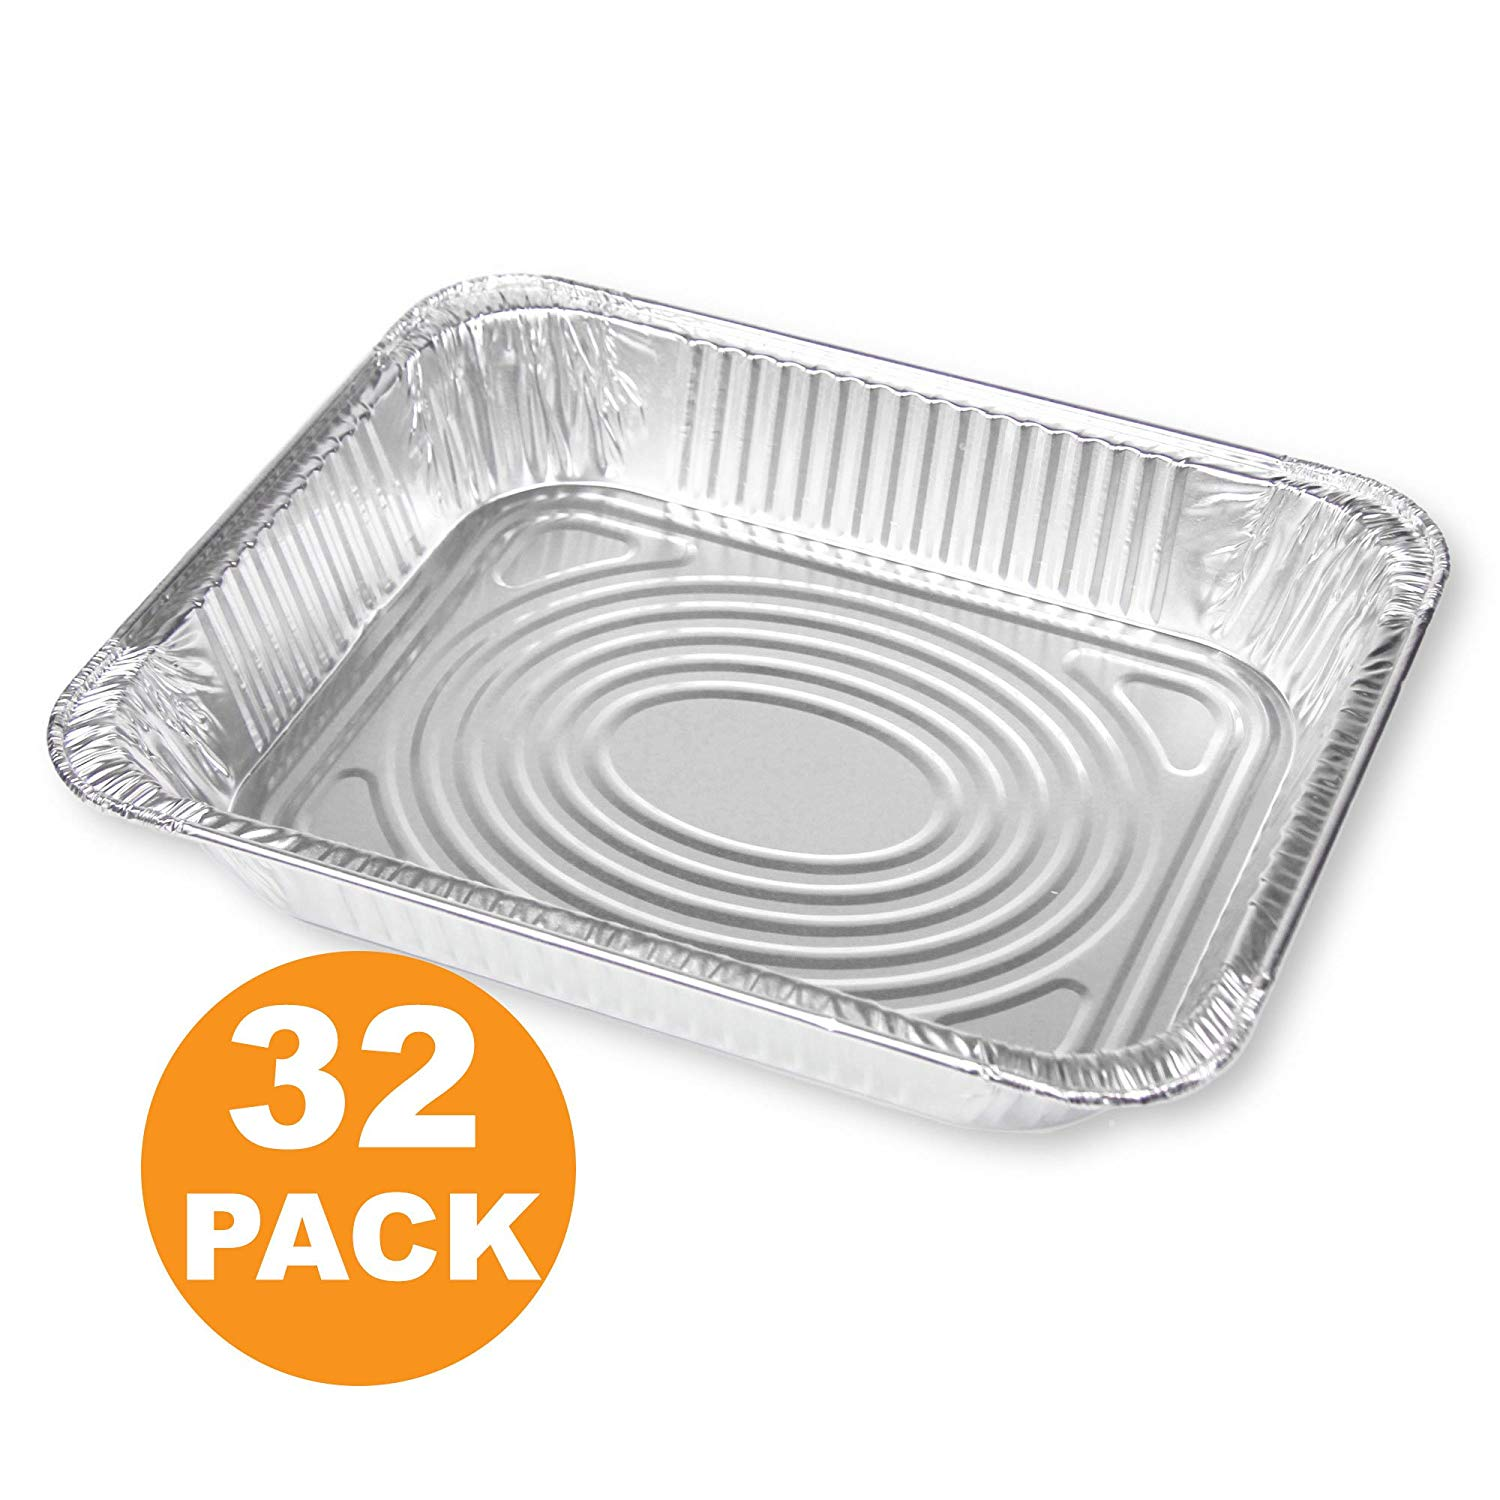 Large Deep Half Size 13 x 10 Rectangular Disposable Aluminum Foil Steam Table Baking Roast Pans [32 Pack]